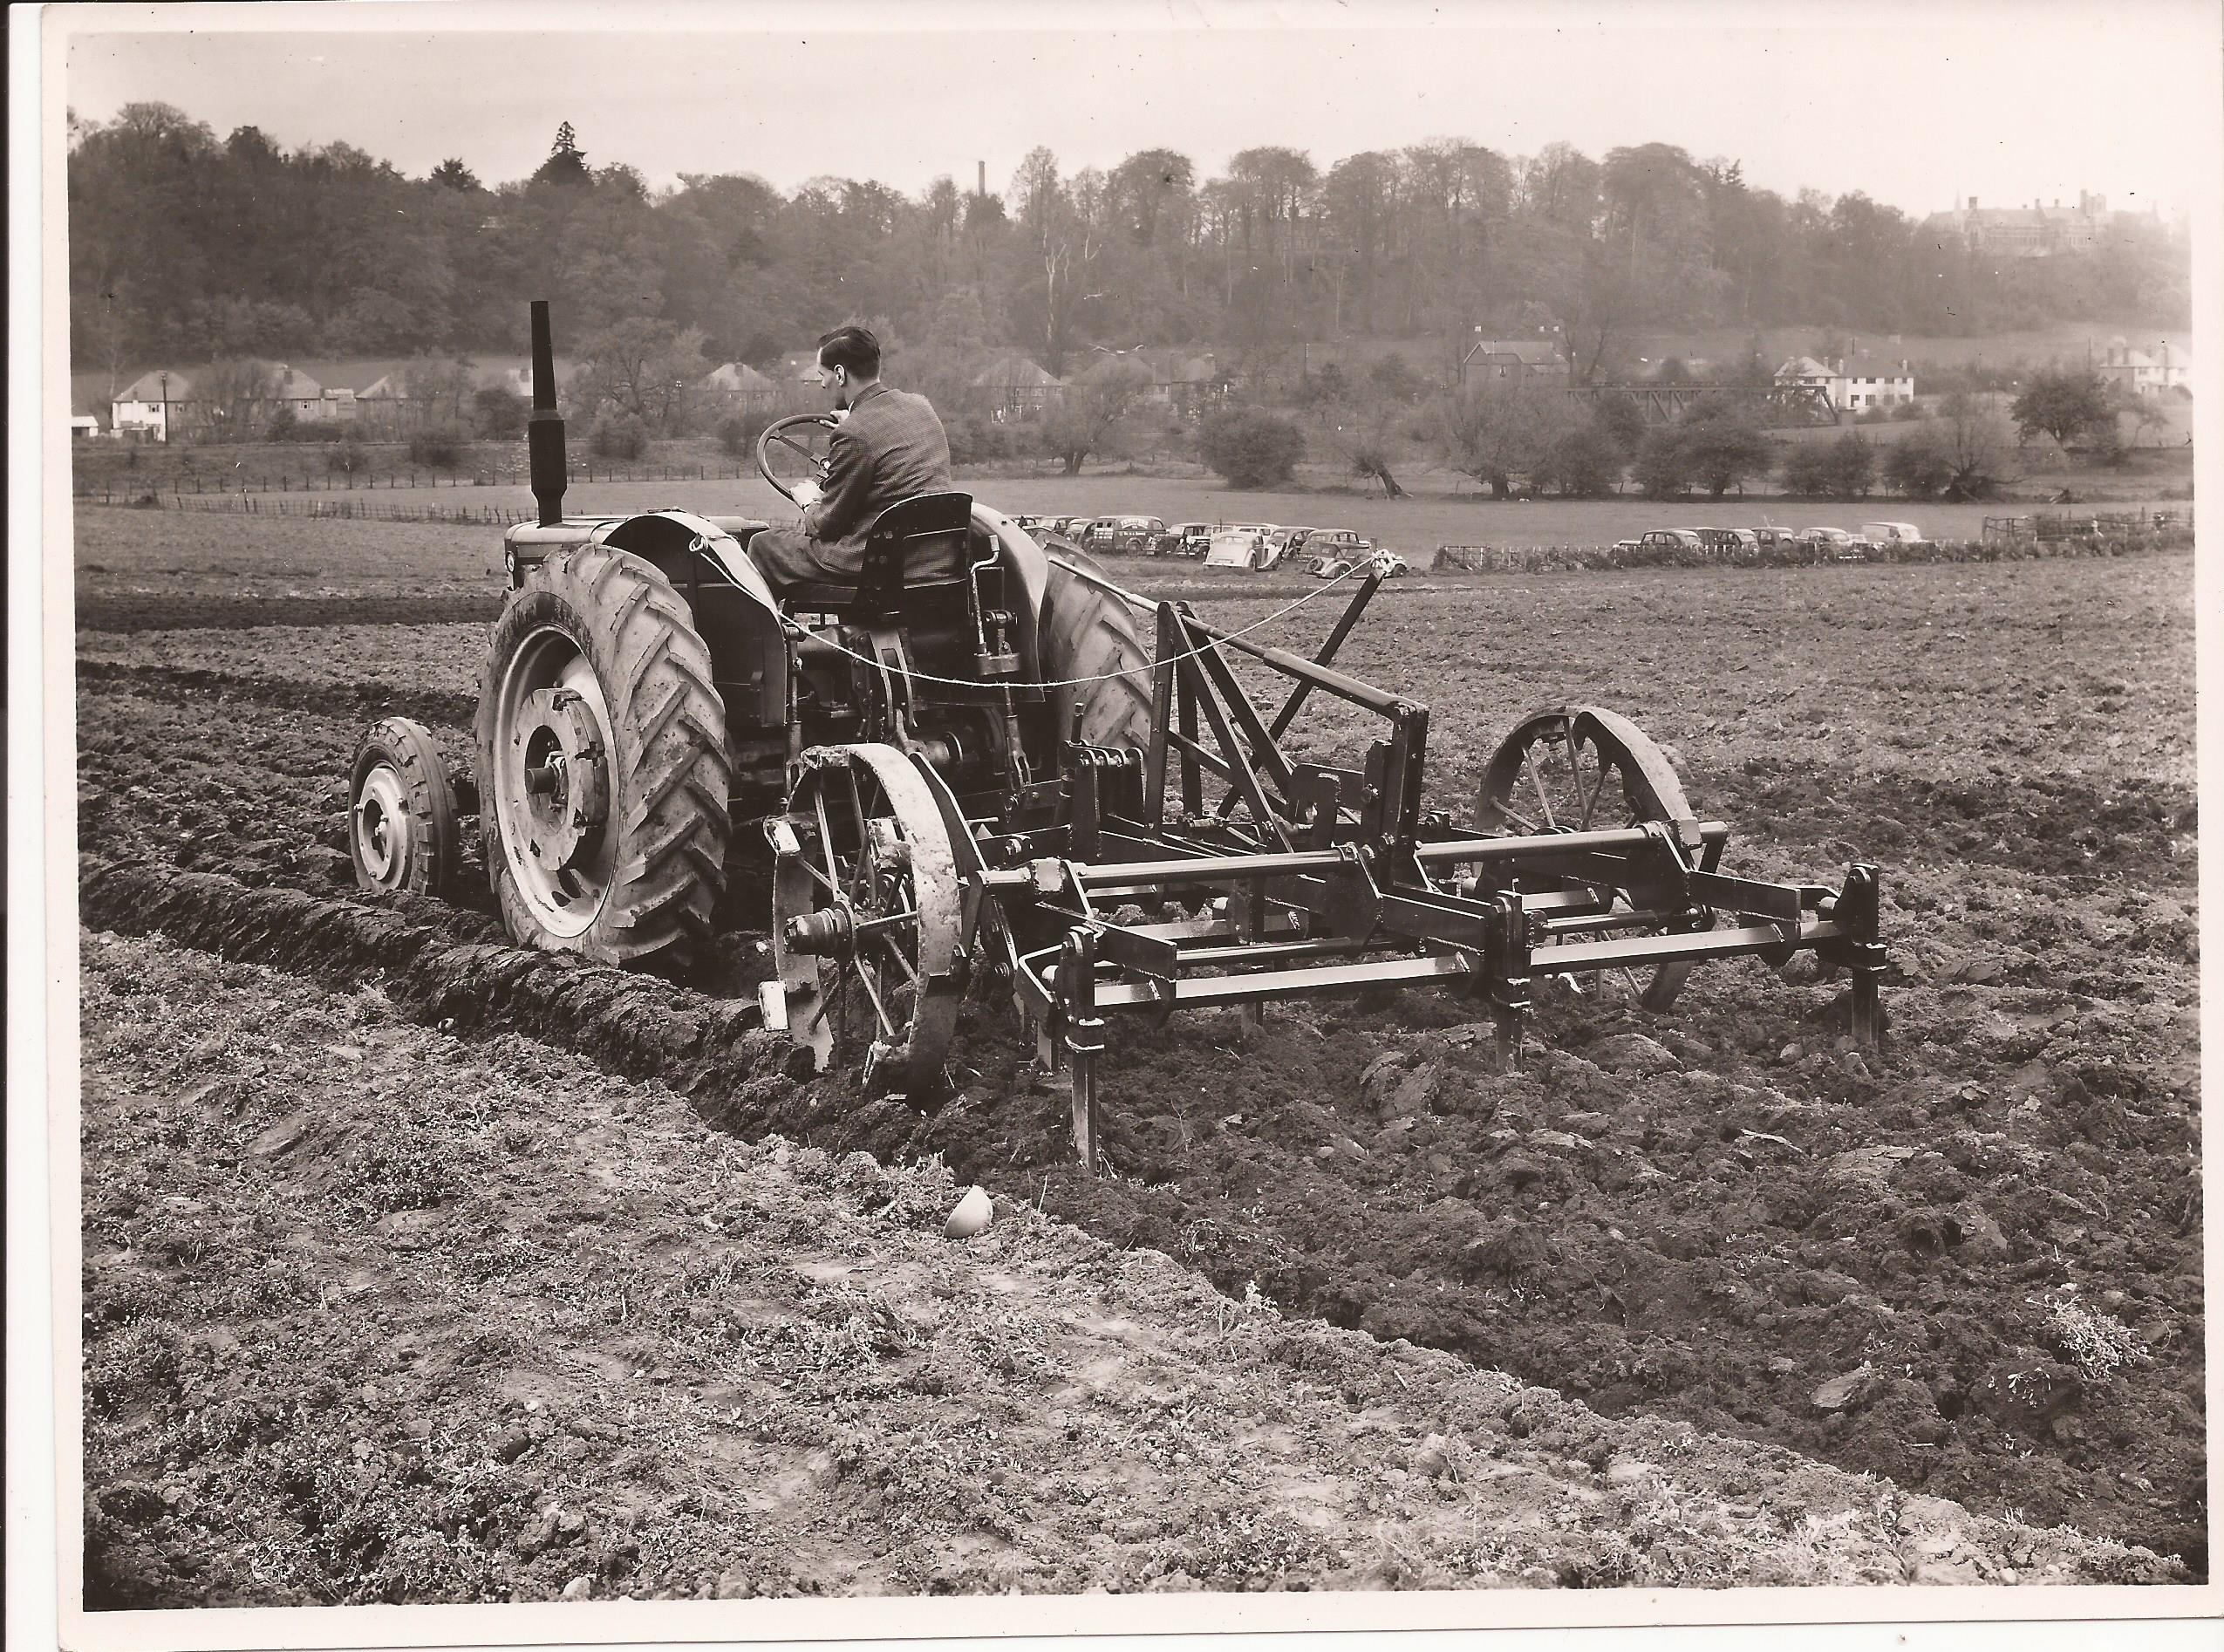 Turner towing a Levertons of Spalding manufactured cultivator